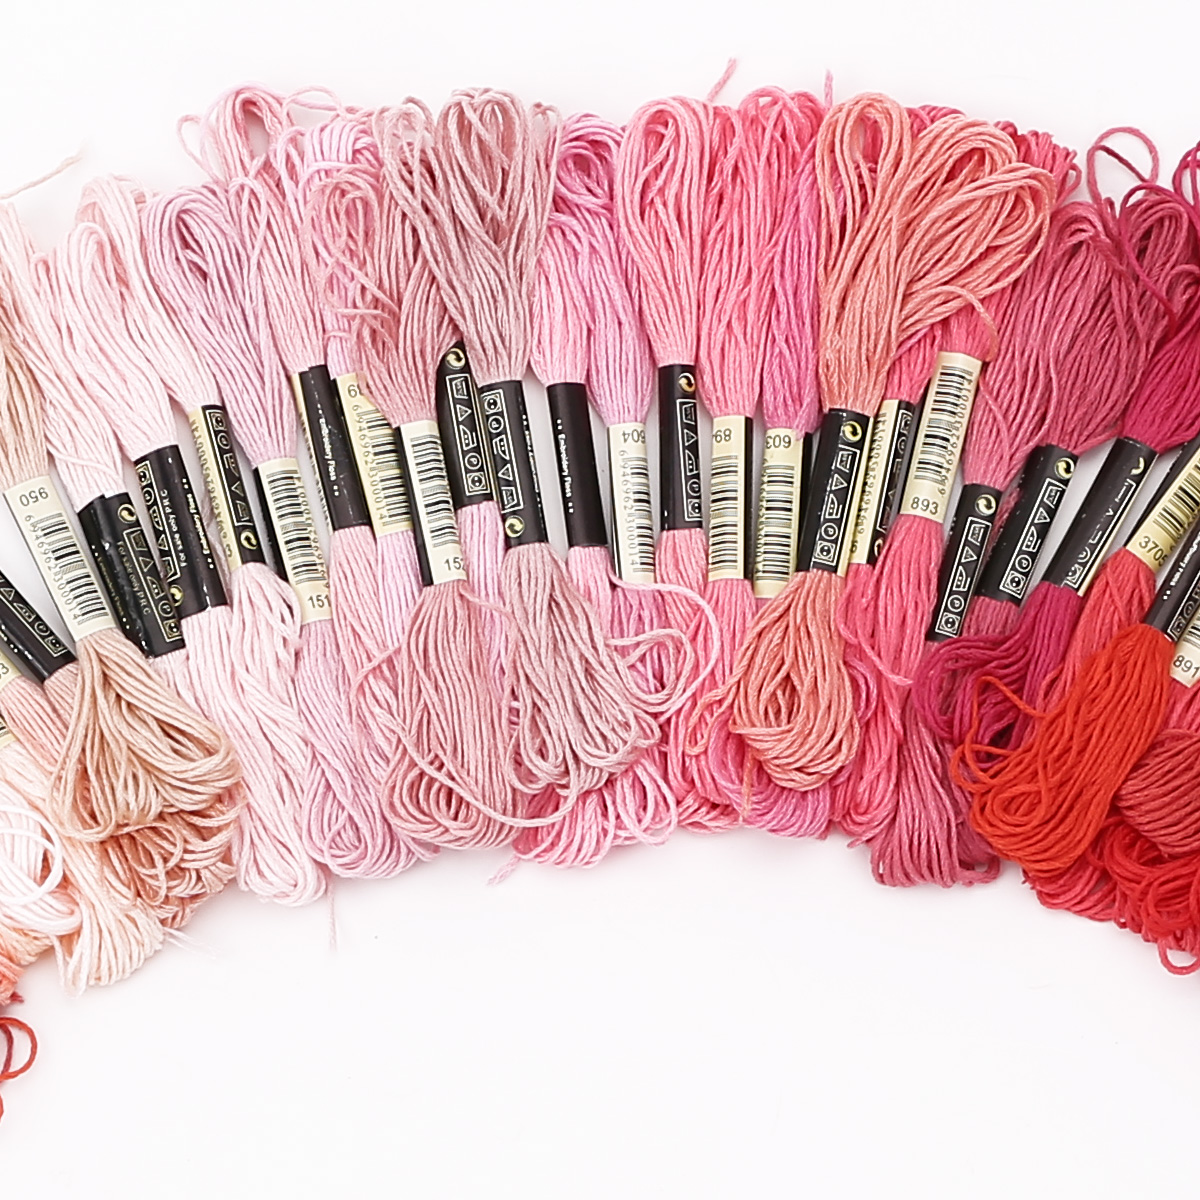 50-300-Color-Cross-Stitch-Thread-Embroidery-Floss-Sewing-Skeins-100-Cotton-Line thumbnail 9